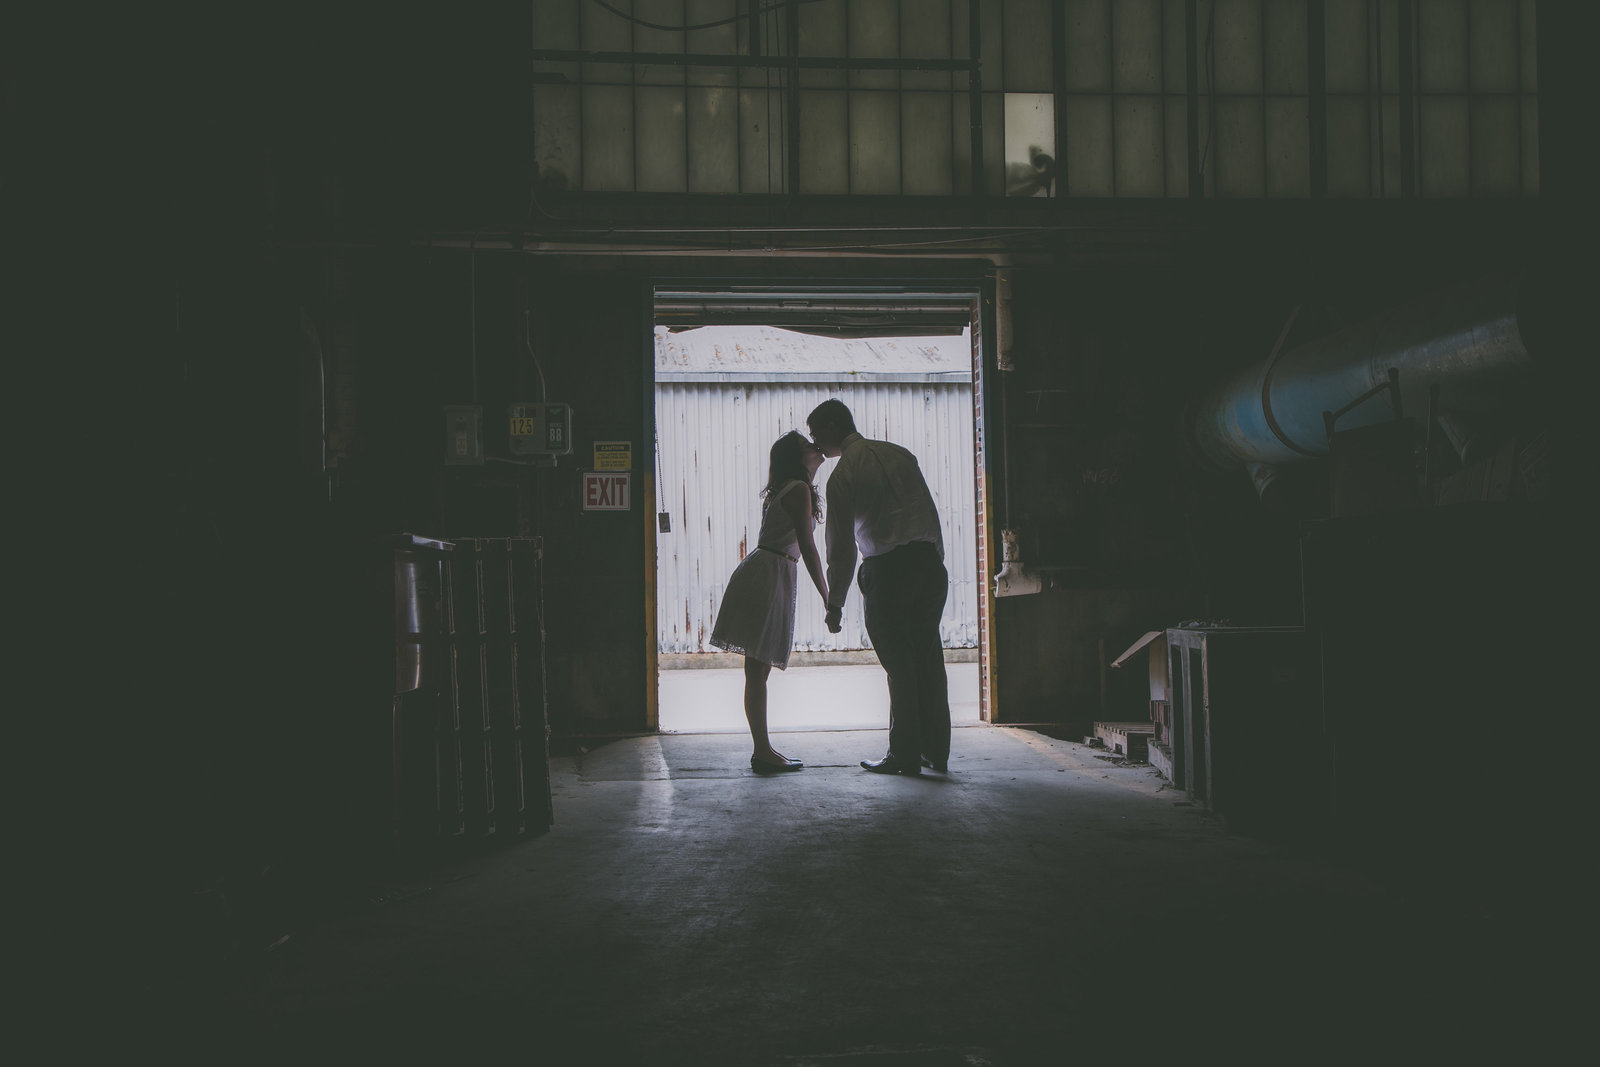 Silhouette of couple against doorway in airplane hanger in Connecticut during engagement session.